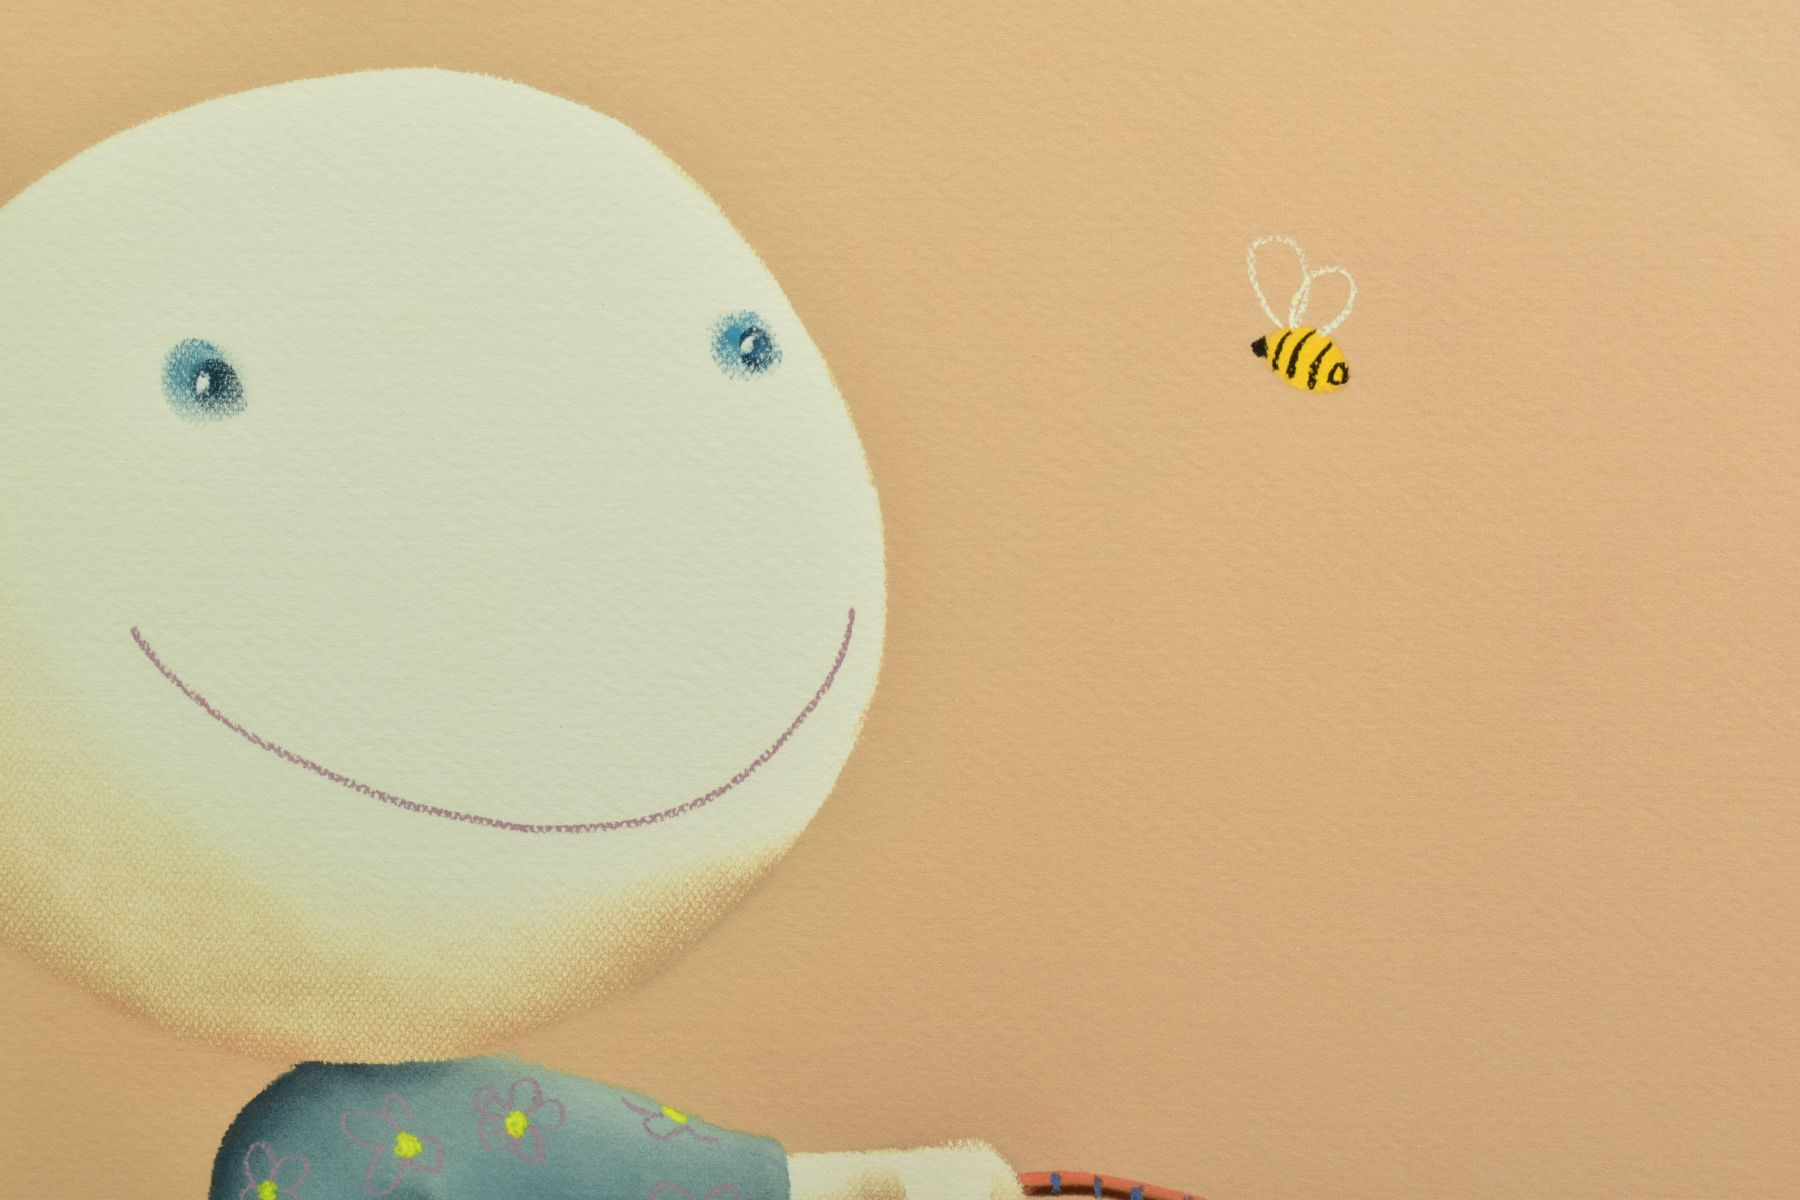 MACKENZIE THORPE (BRITISH 1956), 'It's Only A Bee', a Limited Edition print of a girl and her dog, - Image 3 of 6